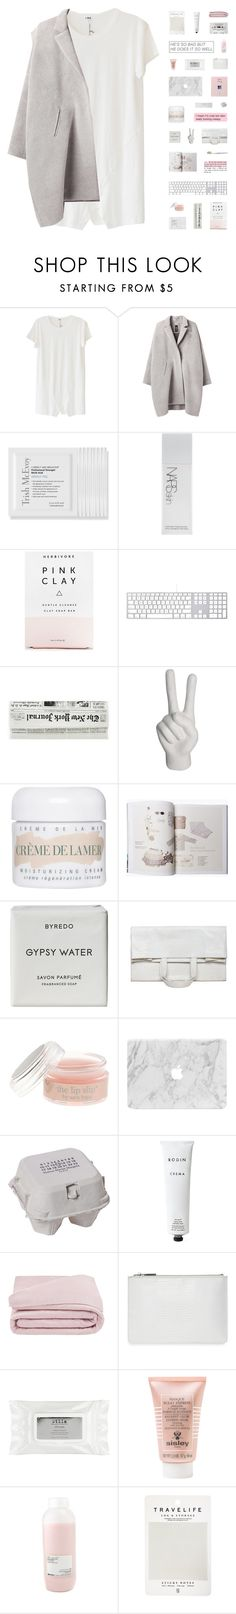 """light me up and maybe i'll let you on it"" by healings ❤ liked on Polyvore featuring LnA, Zero + Maria Cornejo, Trish McEvoy, NARS Cosmetics, Herbivore Botanicals, Noir, La Mer, Byredo, Maison Margiela and J.Crew"